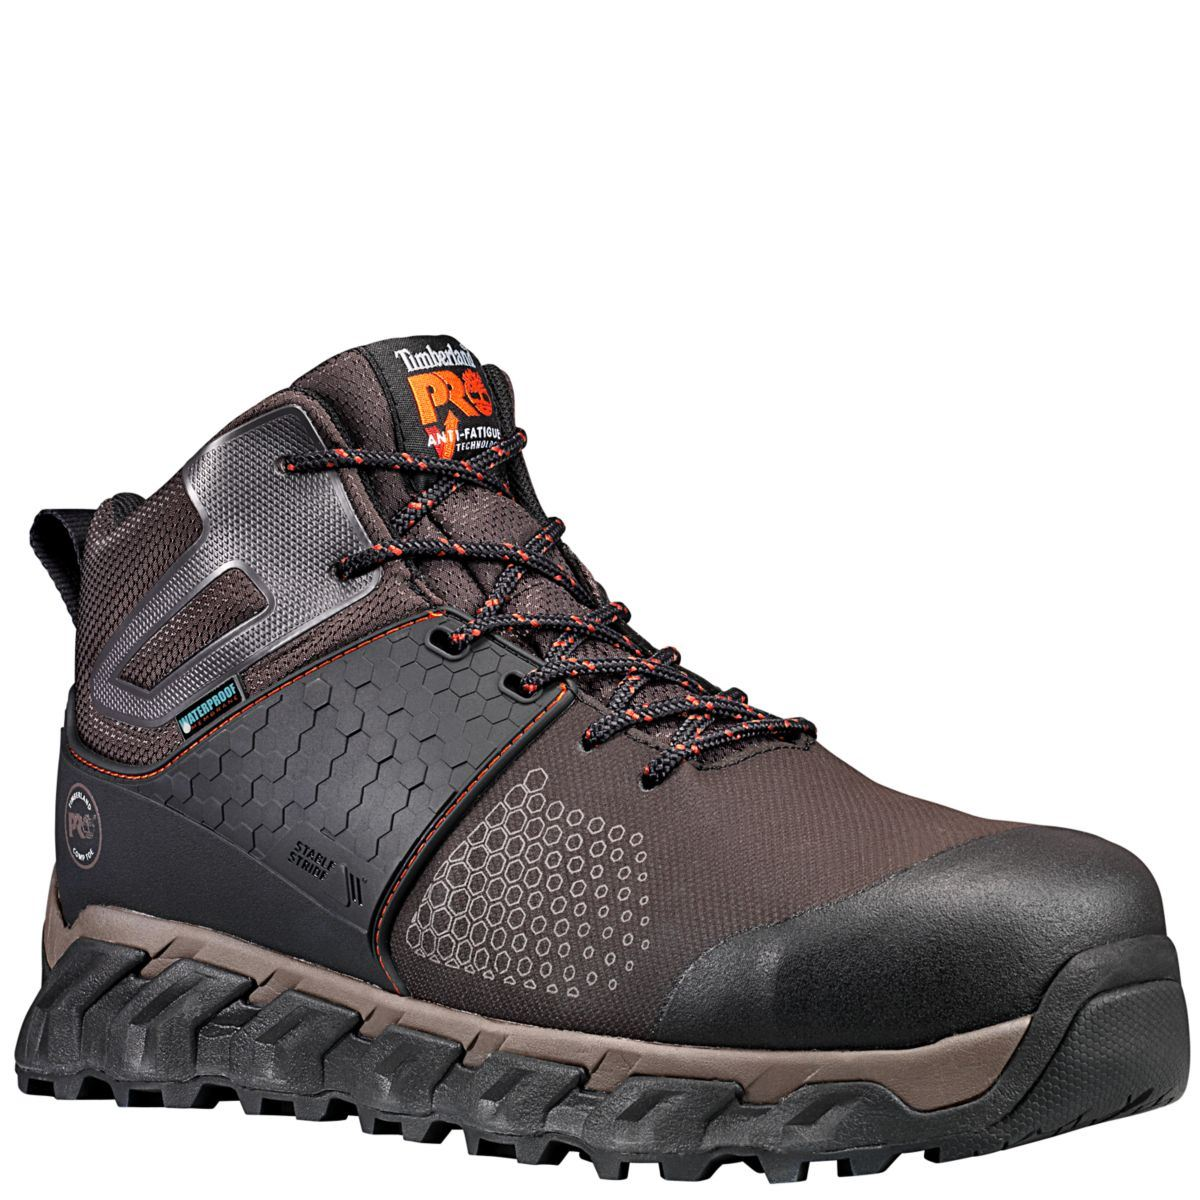 3aab5a3270e Details about Timberland Boots Men Ridgework Composite safety Toe  Waterproof BRN Leather A1KBO